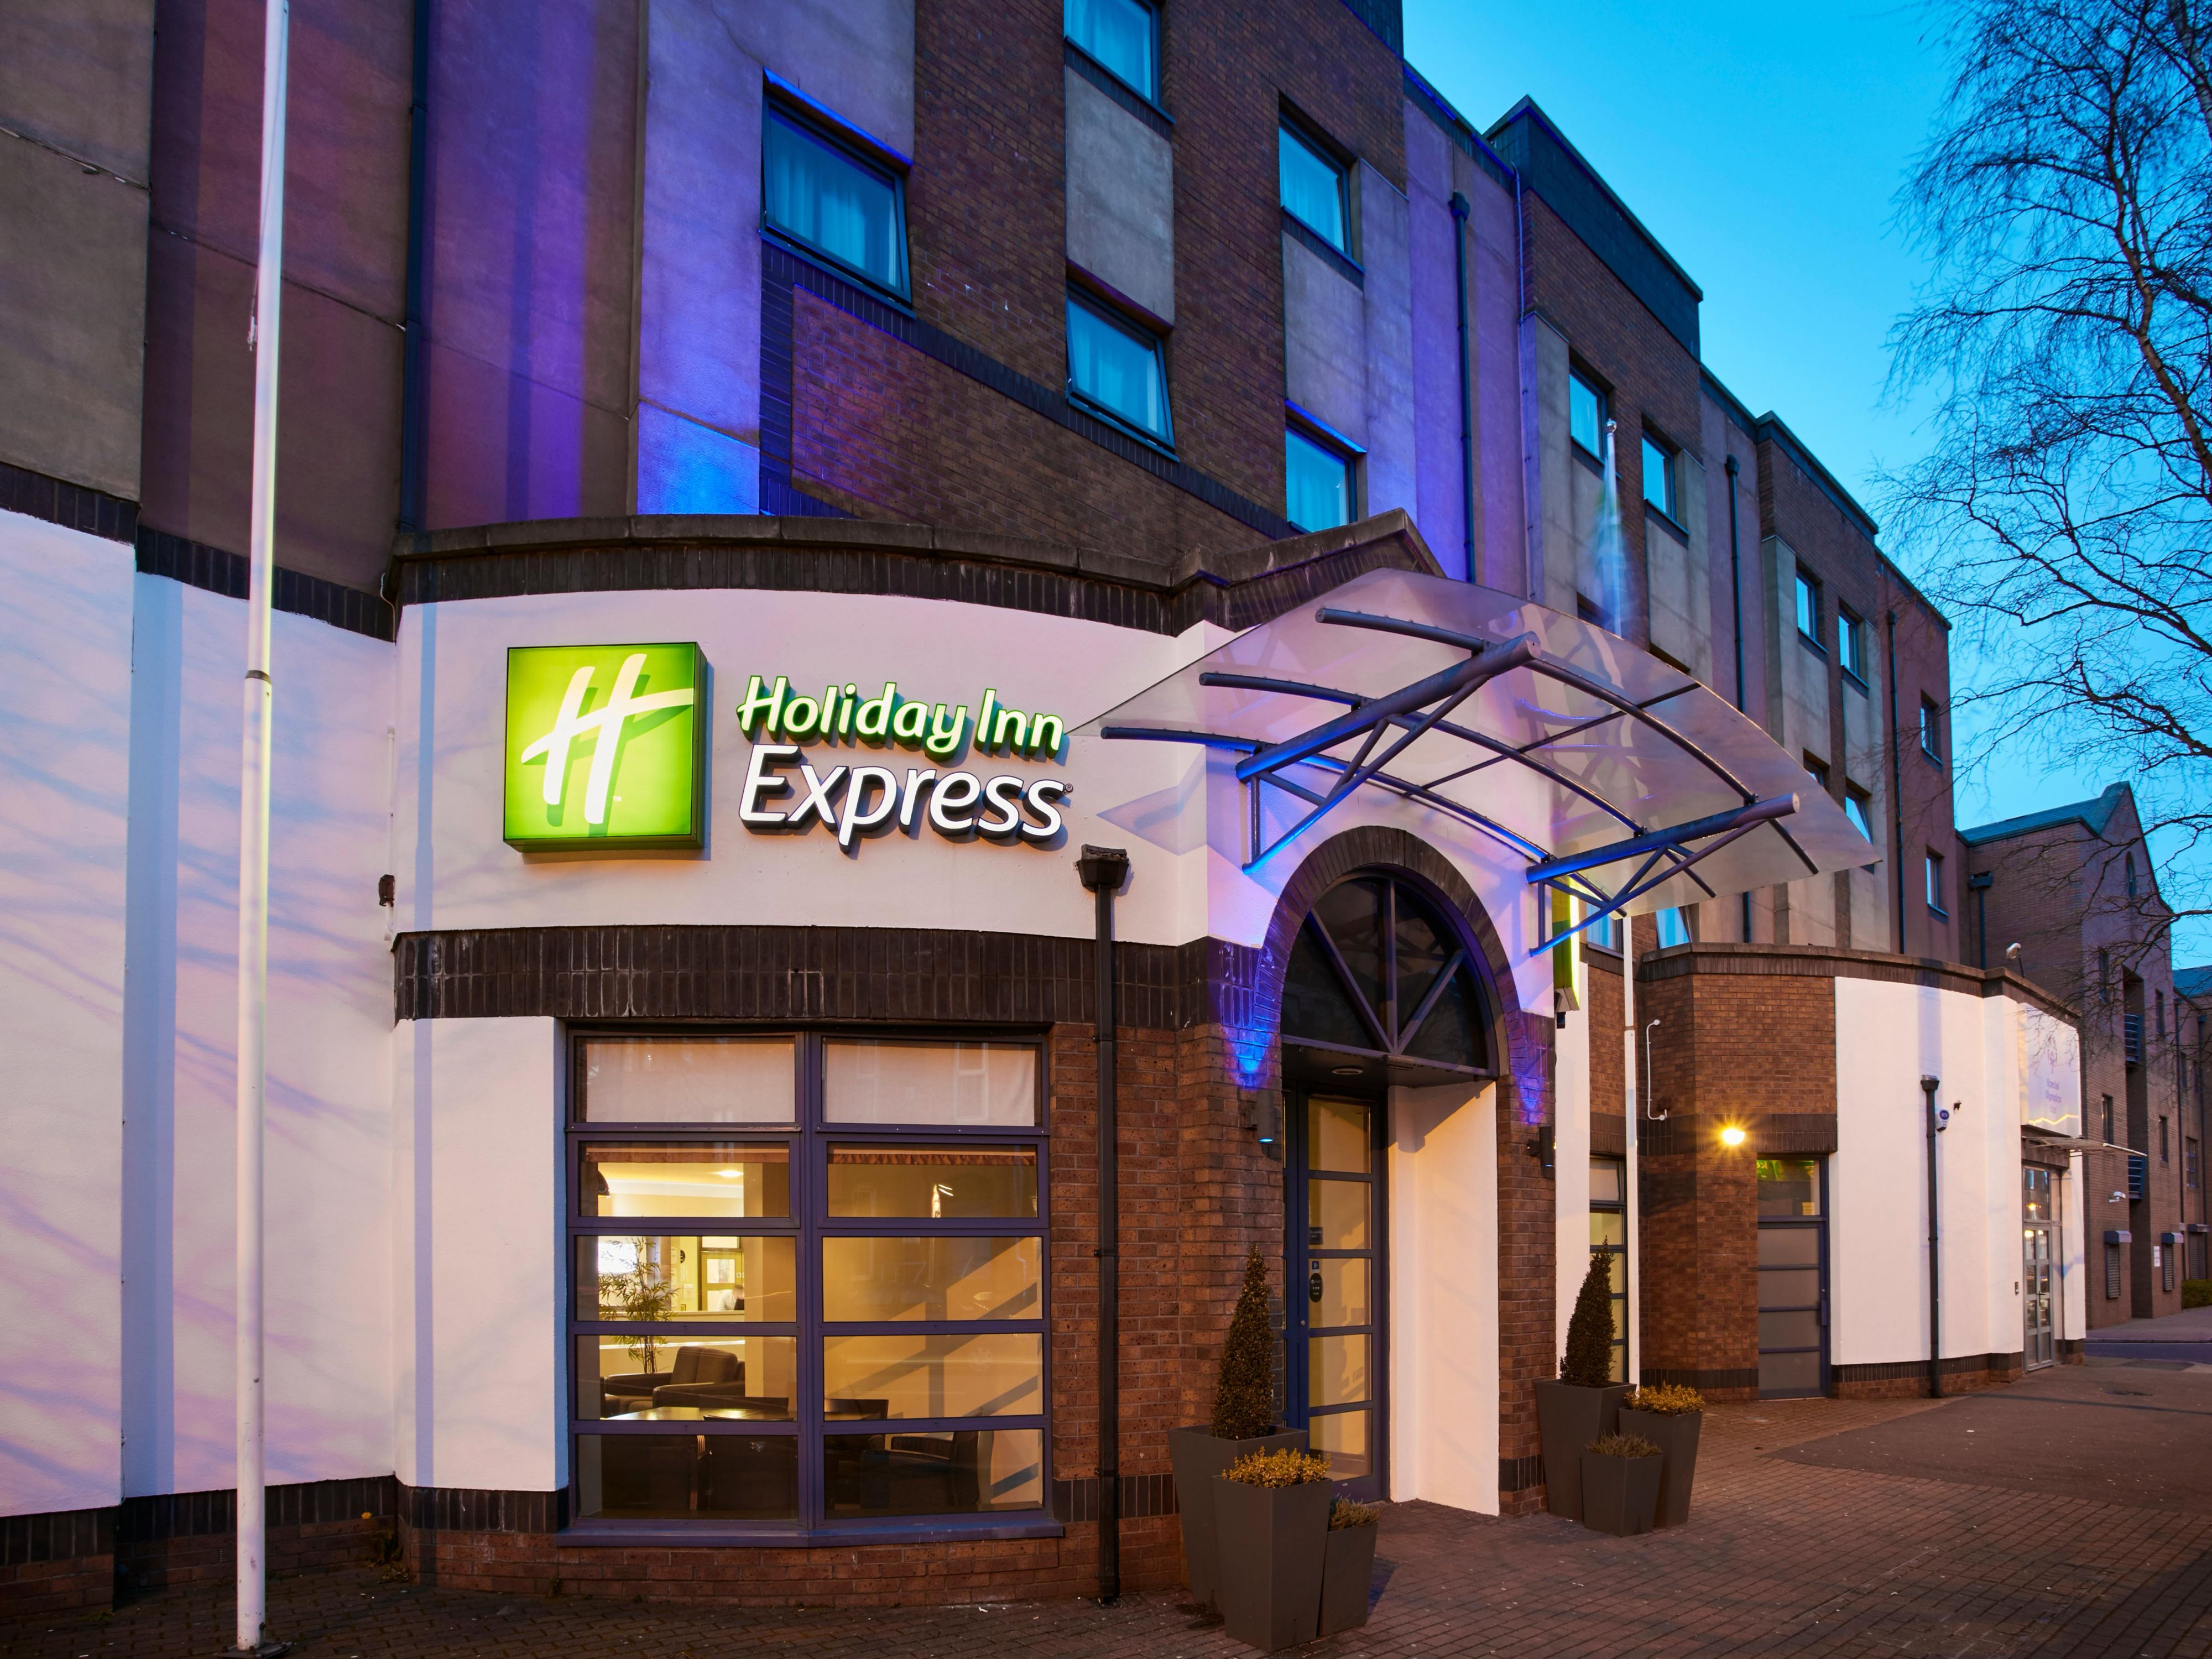 Entrance to Holiday Inn Express Belfast